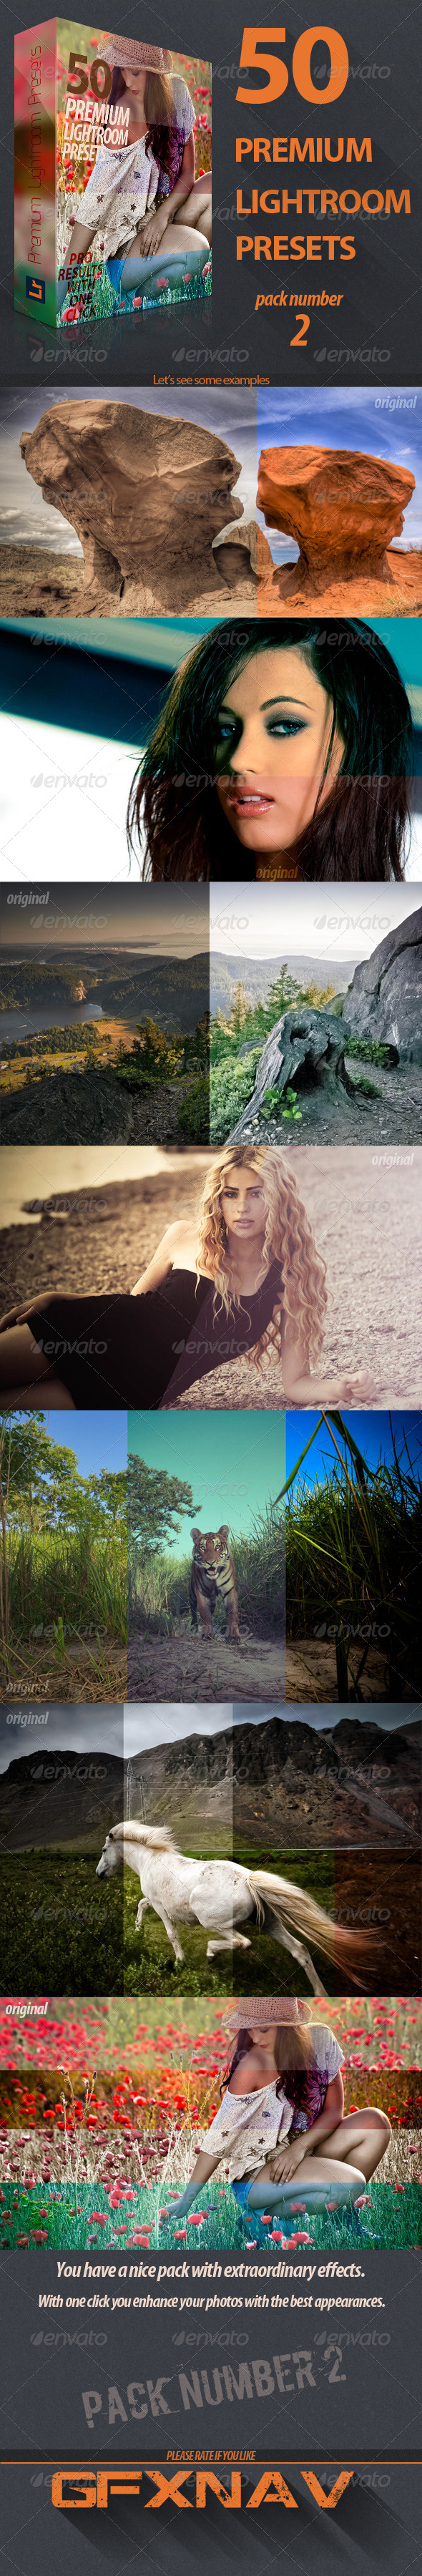 GraphicRiver 50 Premium Lightroom Presets Pack No2 5776208